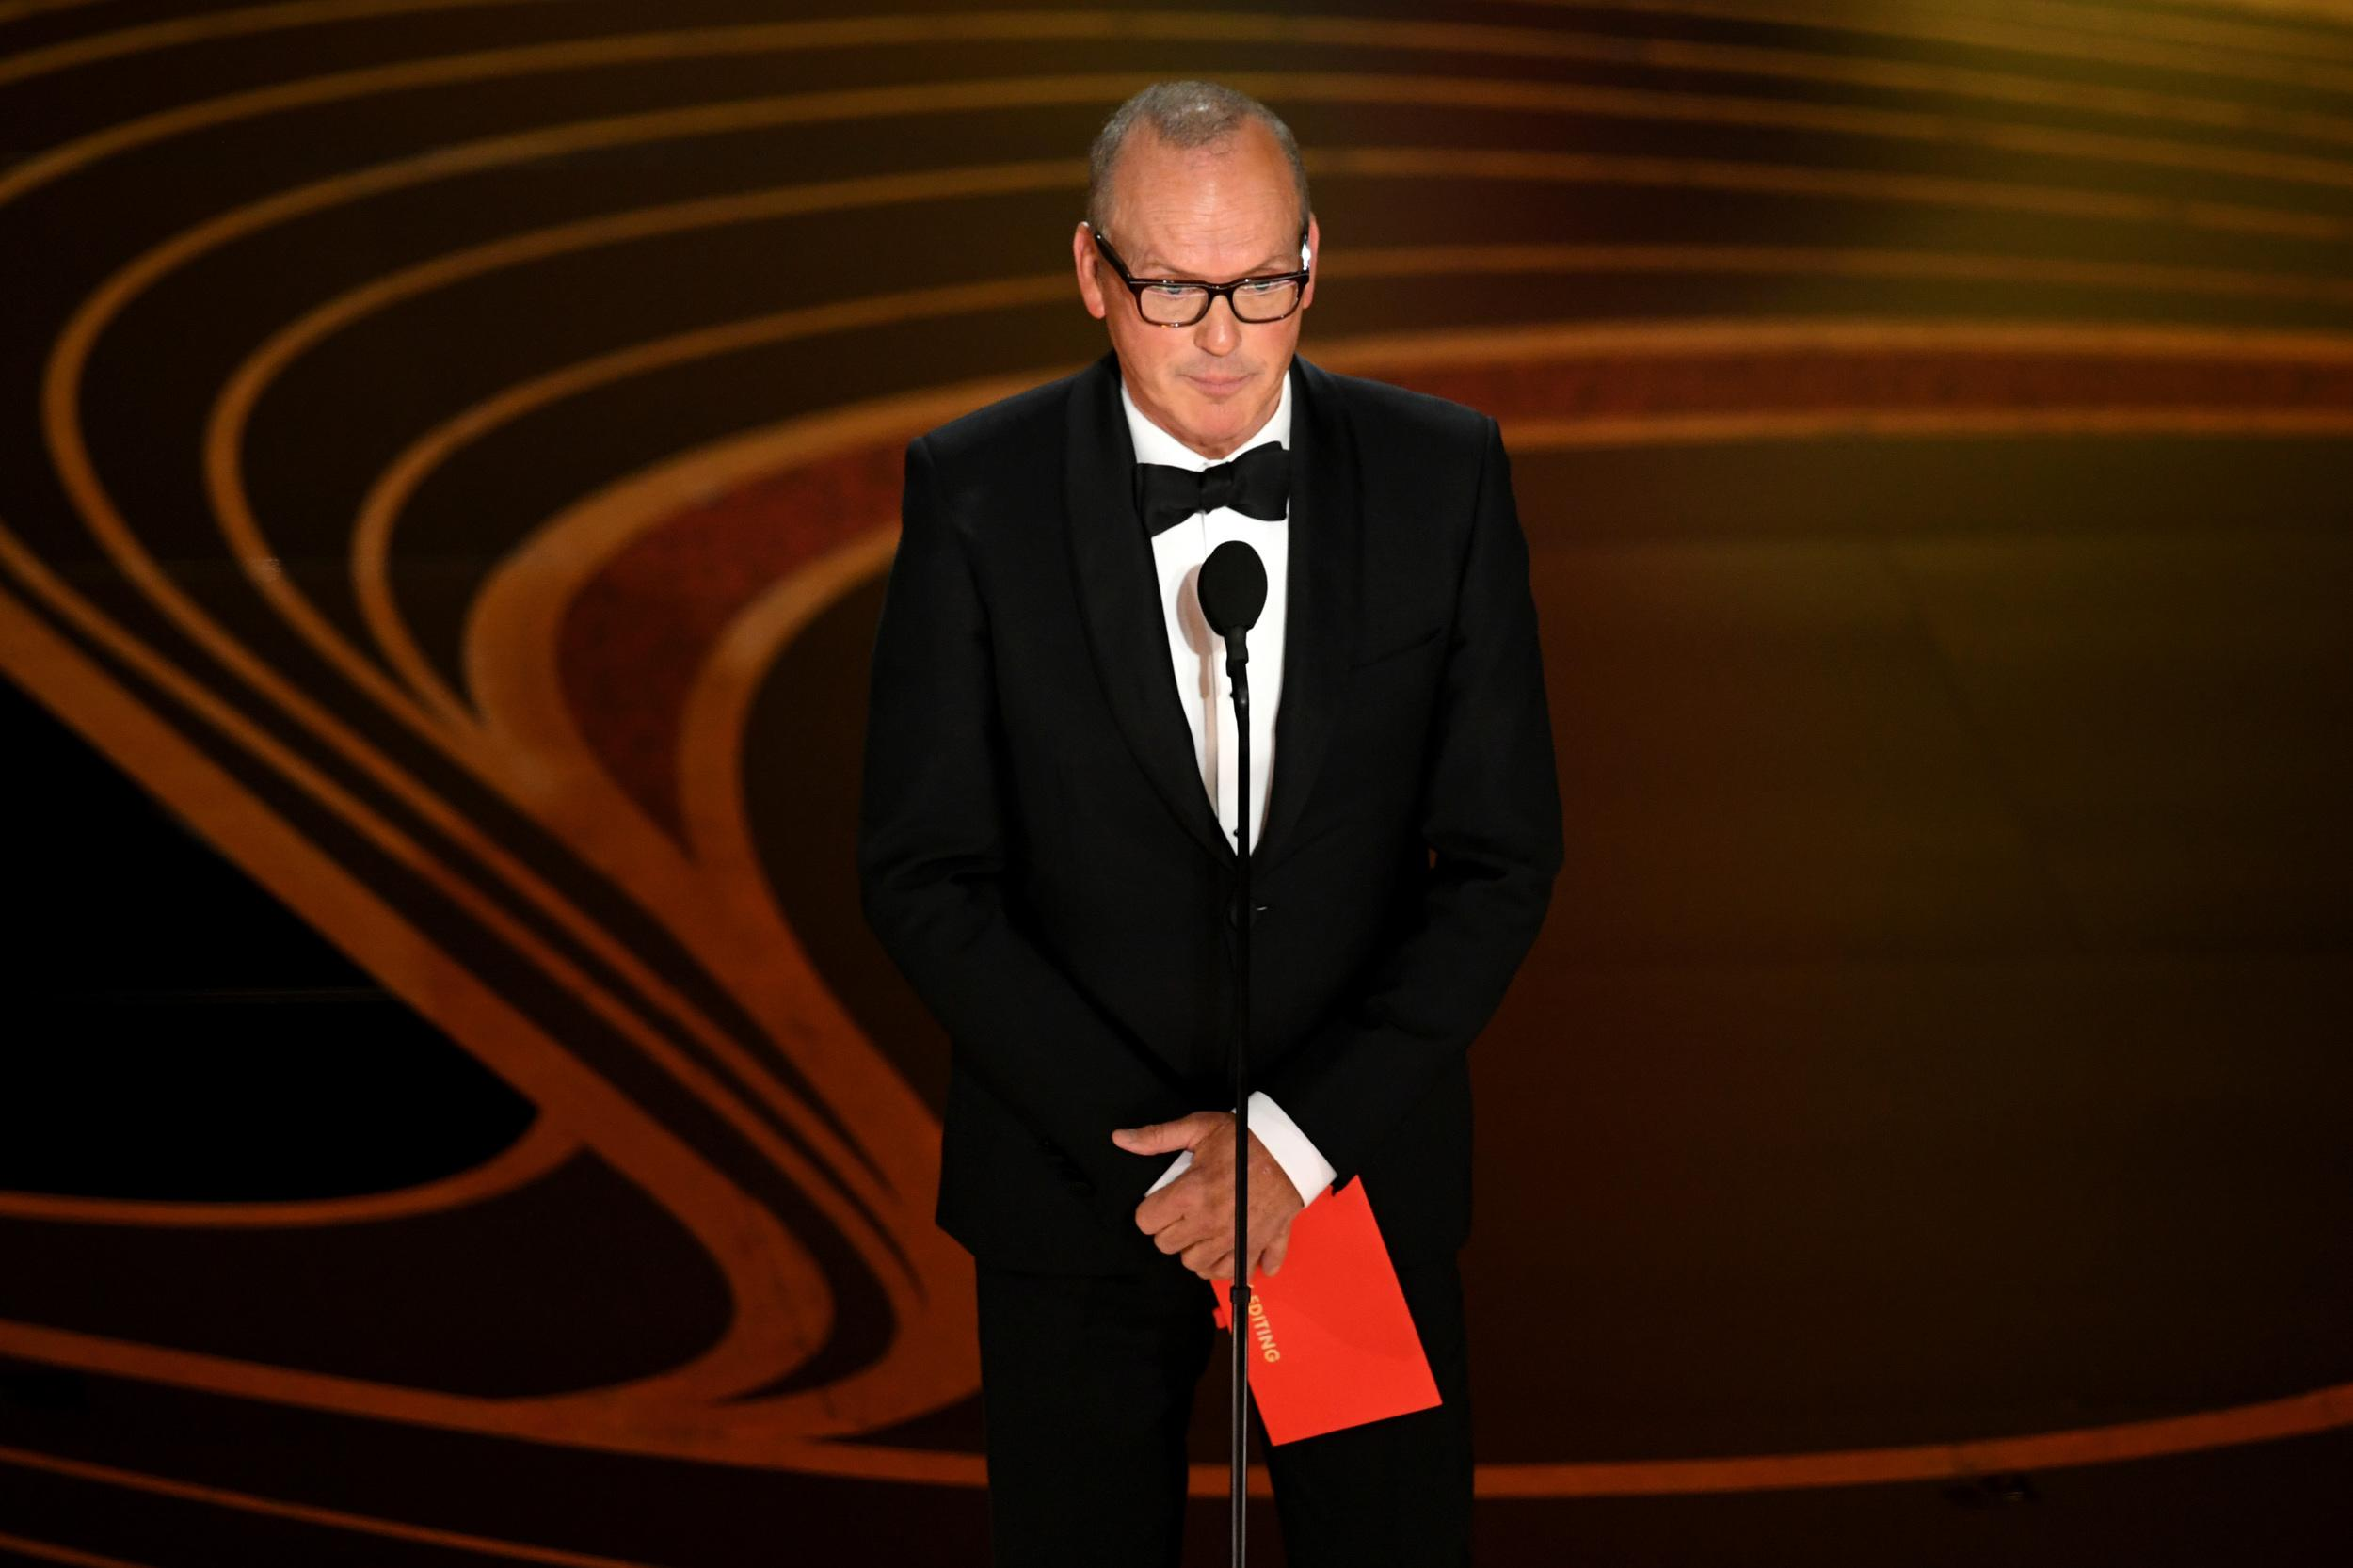 HOLLYWOOD, CALIFORNIA - FEBRUARY 24: Michael Keaton speaks onstage during the 91st Annual Academy Awards at Dolby Theatre on February 24, 2019 in Hollywood, California. (Photo by Kevin Winter/Getty Images)